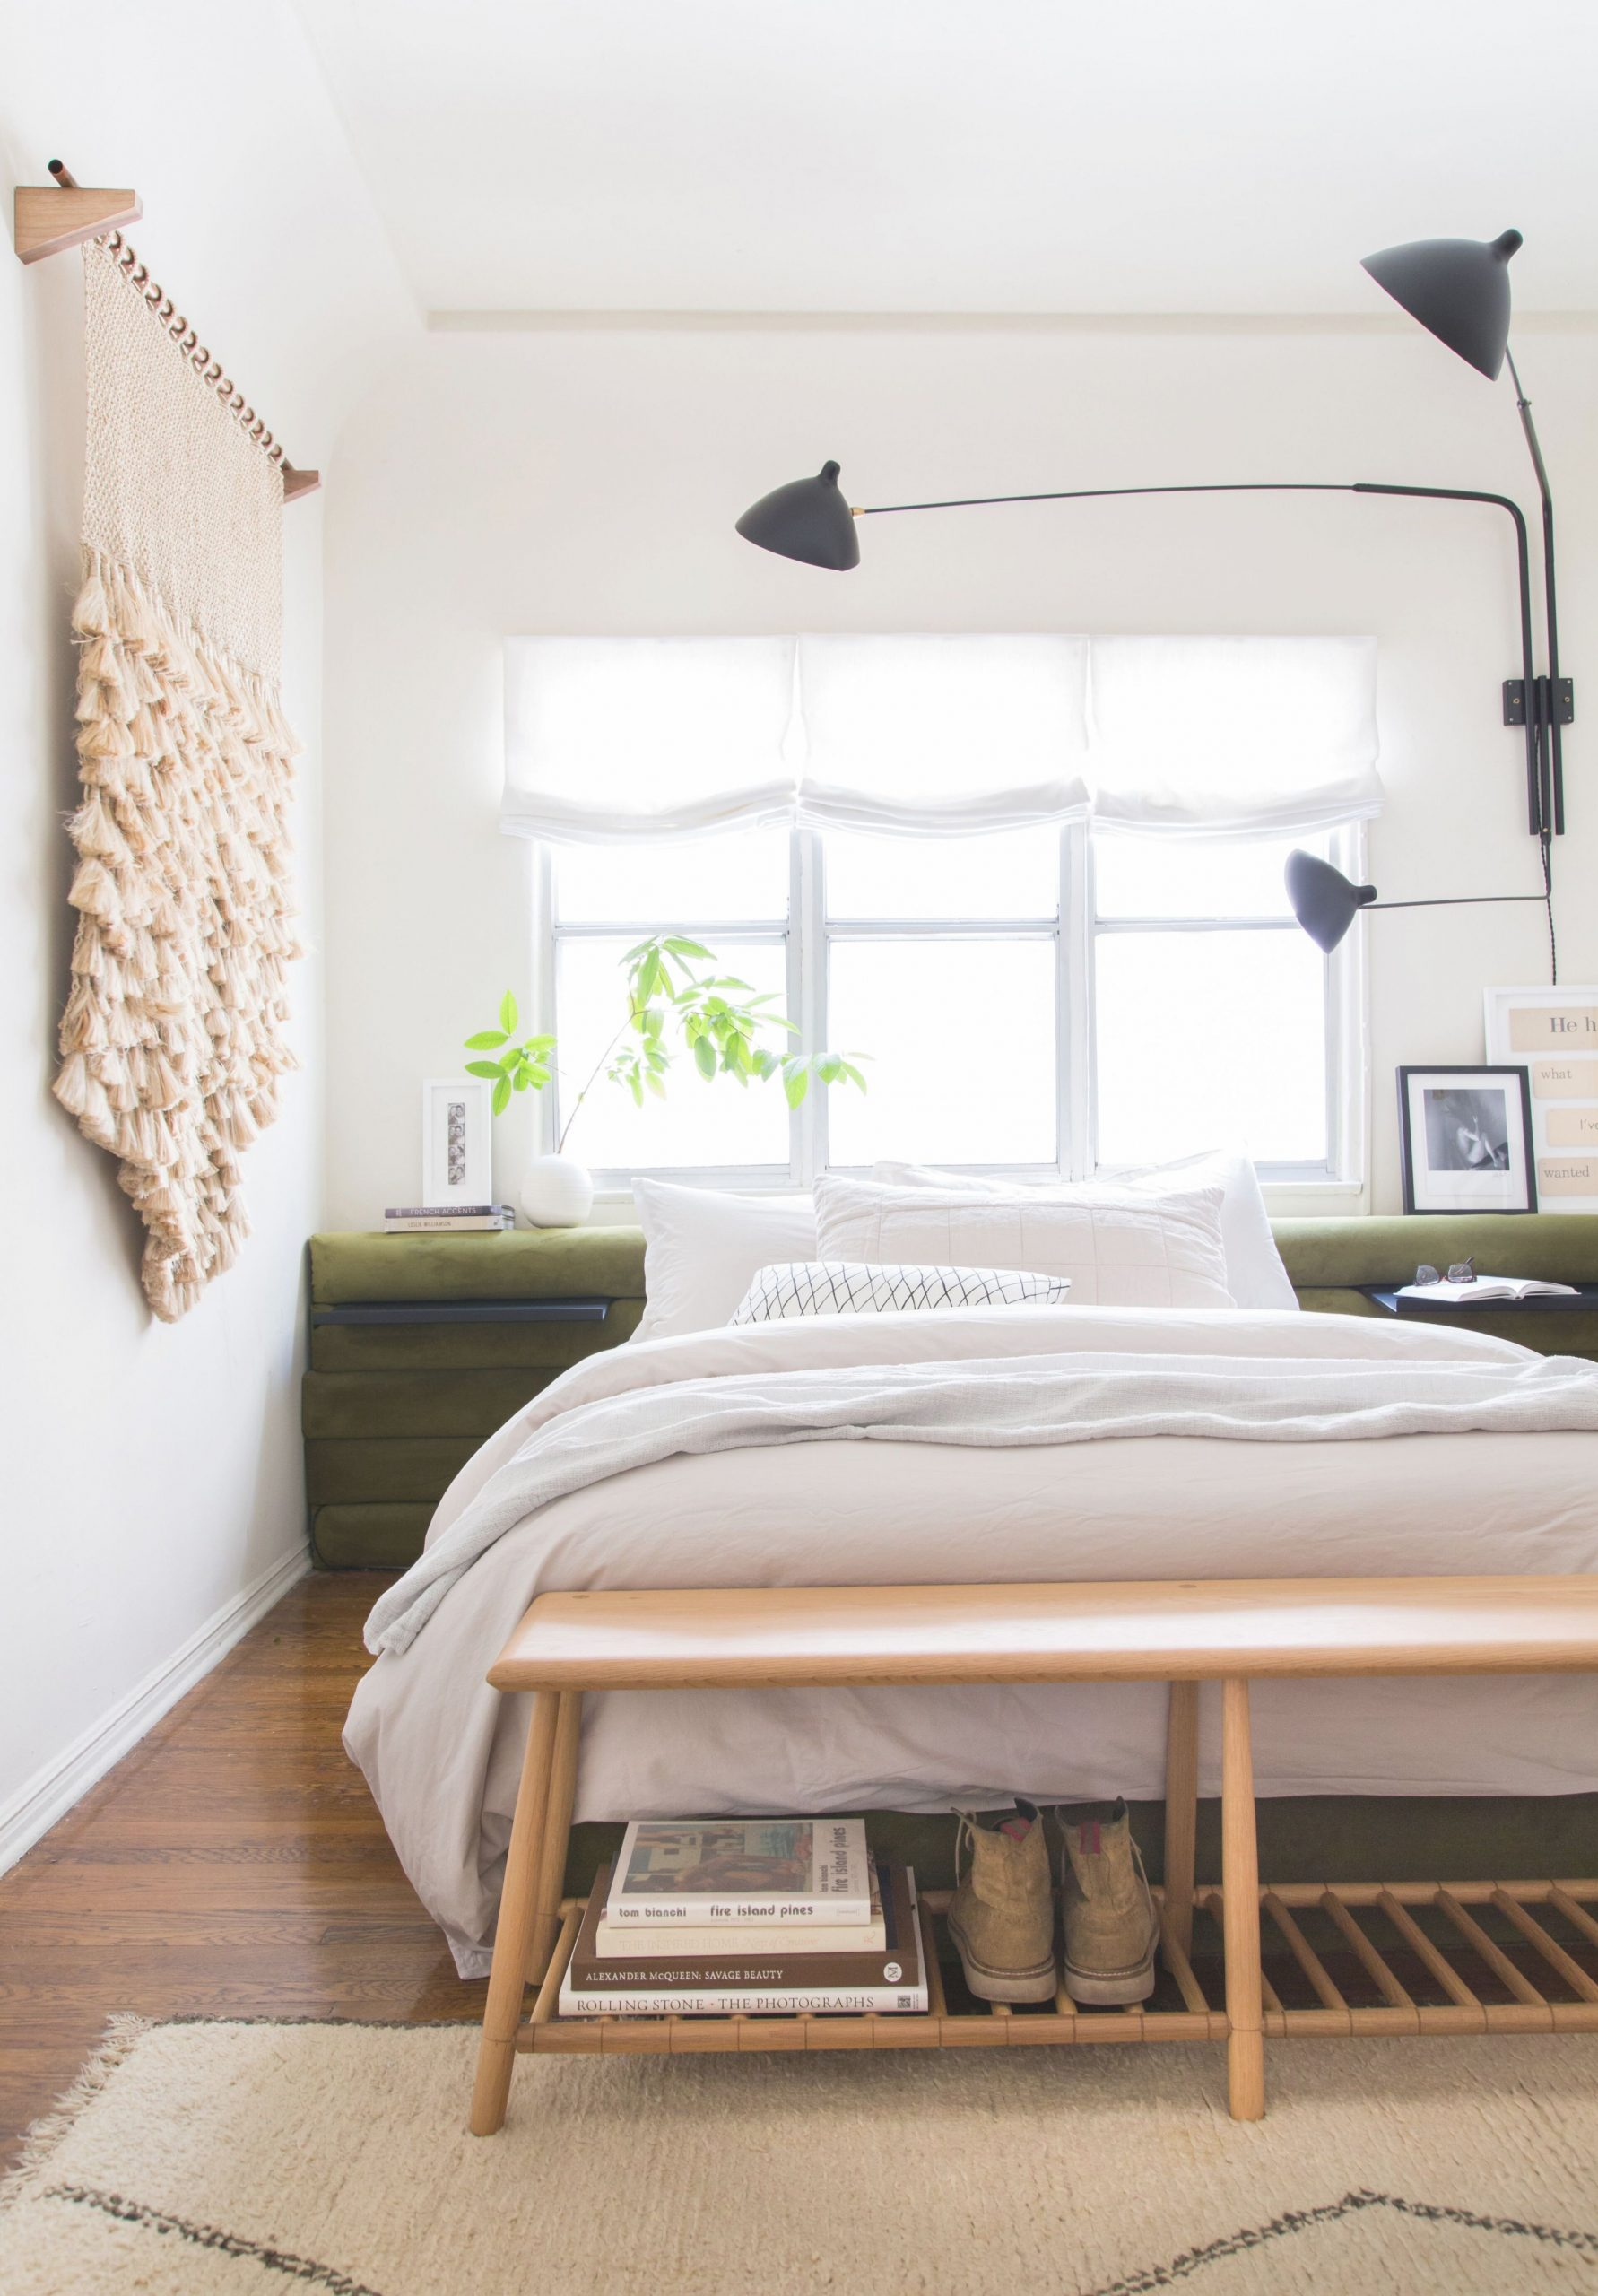 30 Small Space Decorating Ideas – Small House Ideas regarding Small Bedroom Decorating Ideas